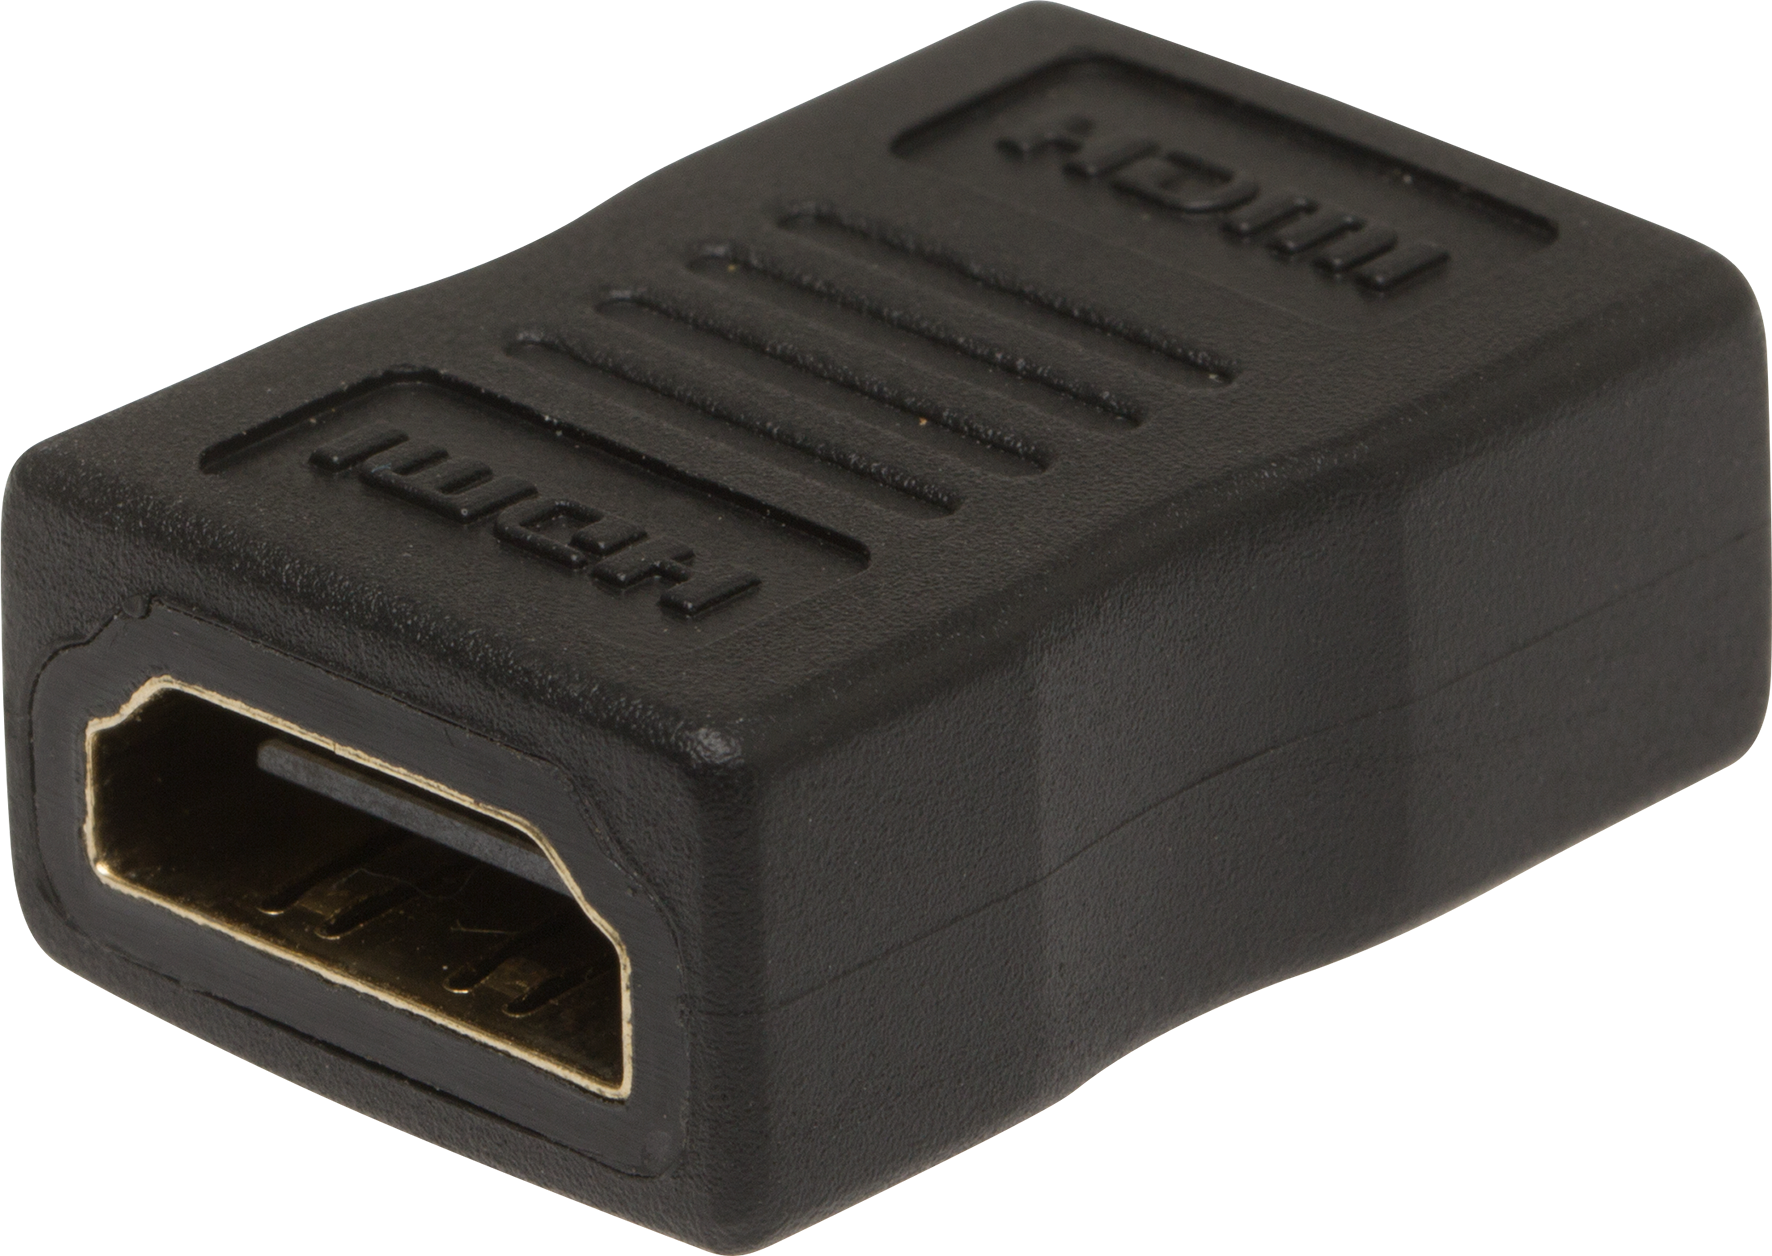 Läs mer om HDMI Female to Female Adapter